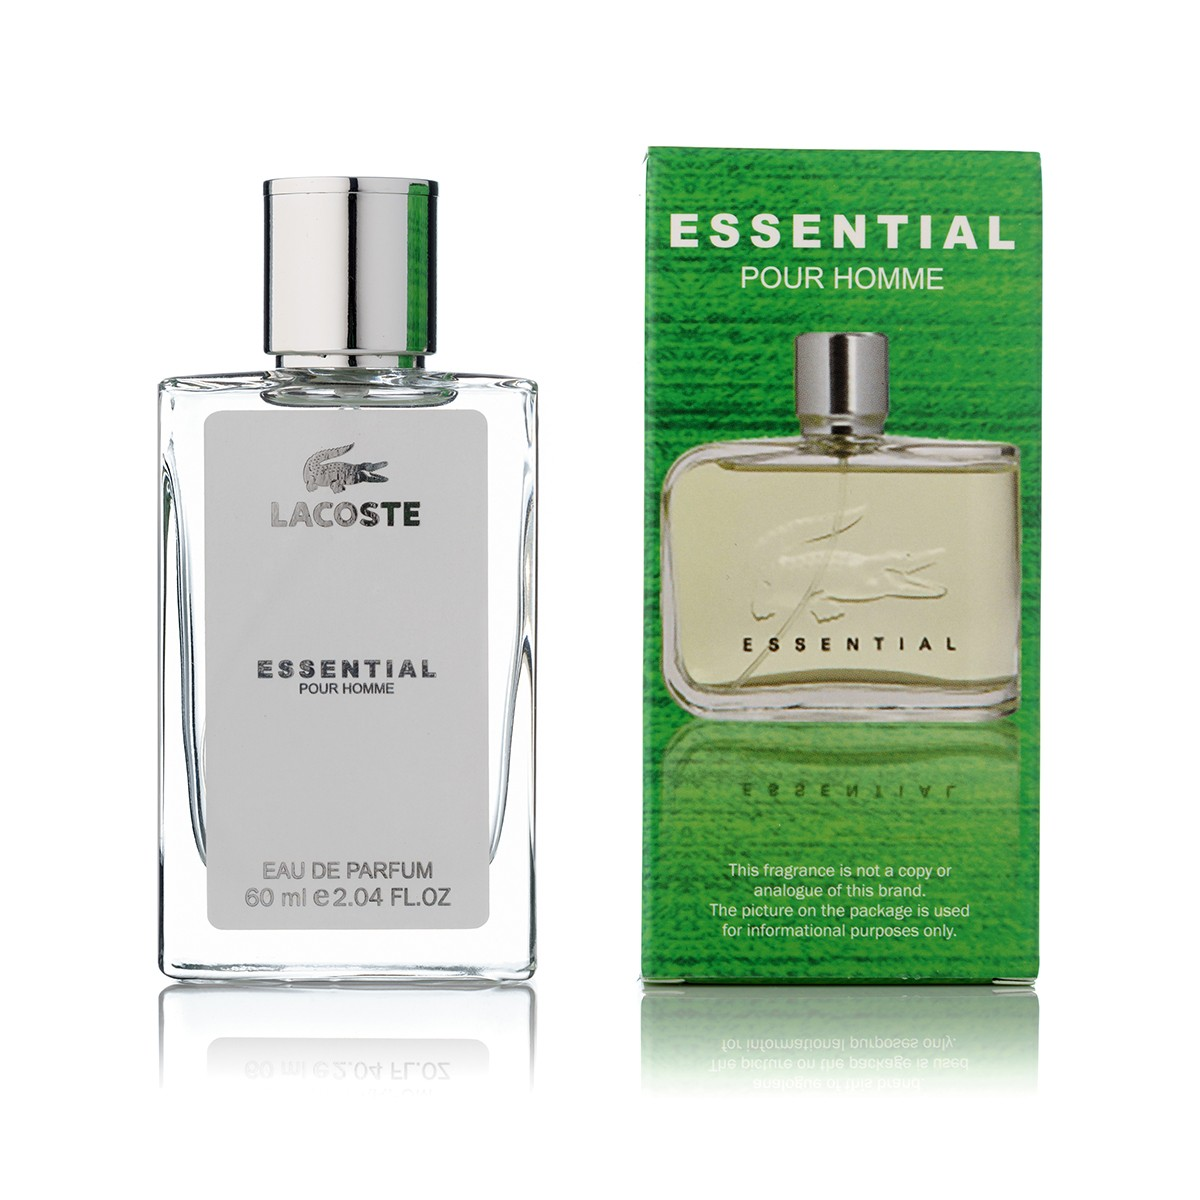 Lacoste Essential edp 60 ml tester color box